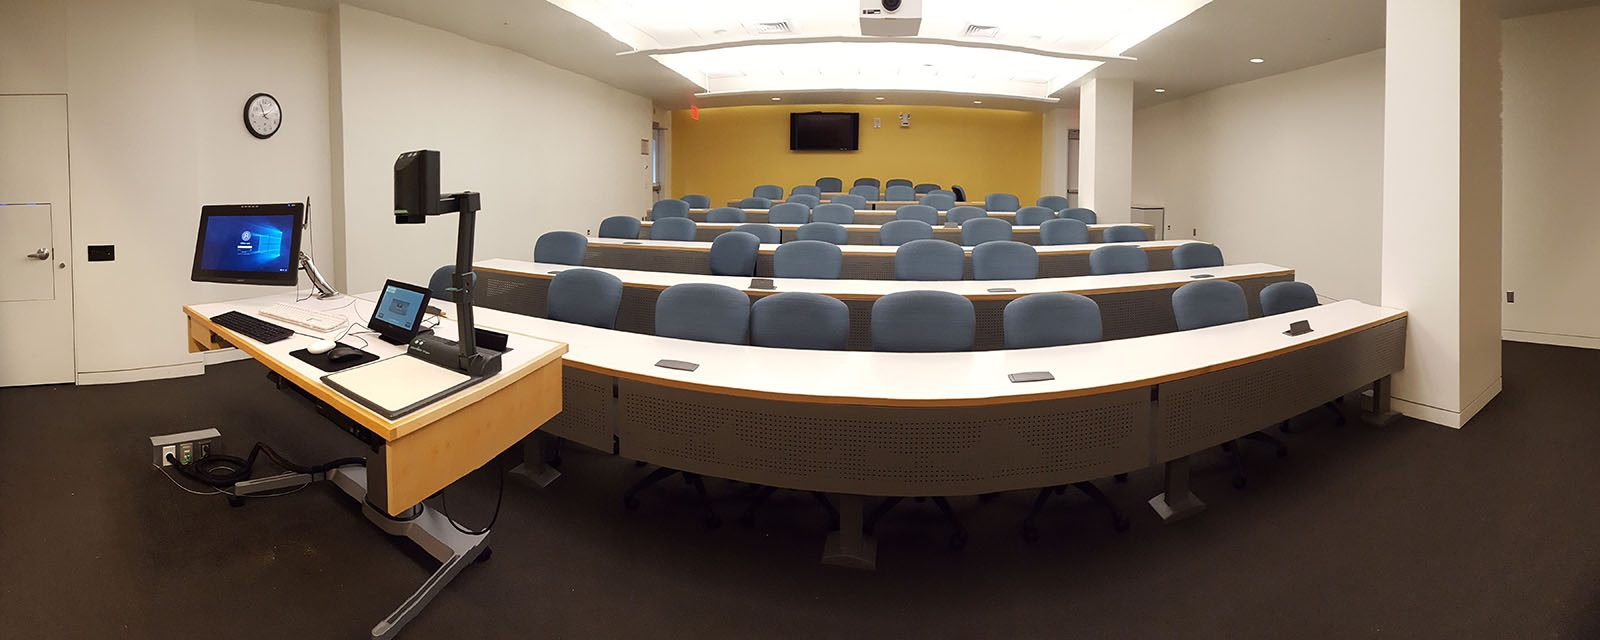 Panorama of Newhouse 250 from front of room, movable chairs, teaching station front left